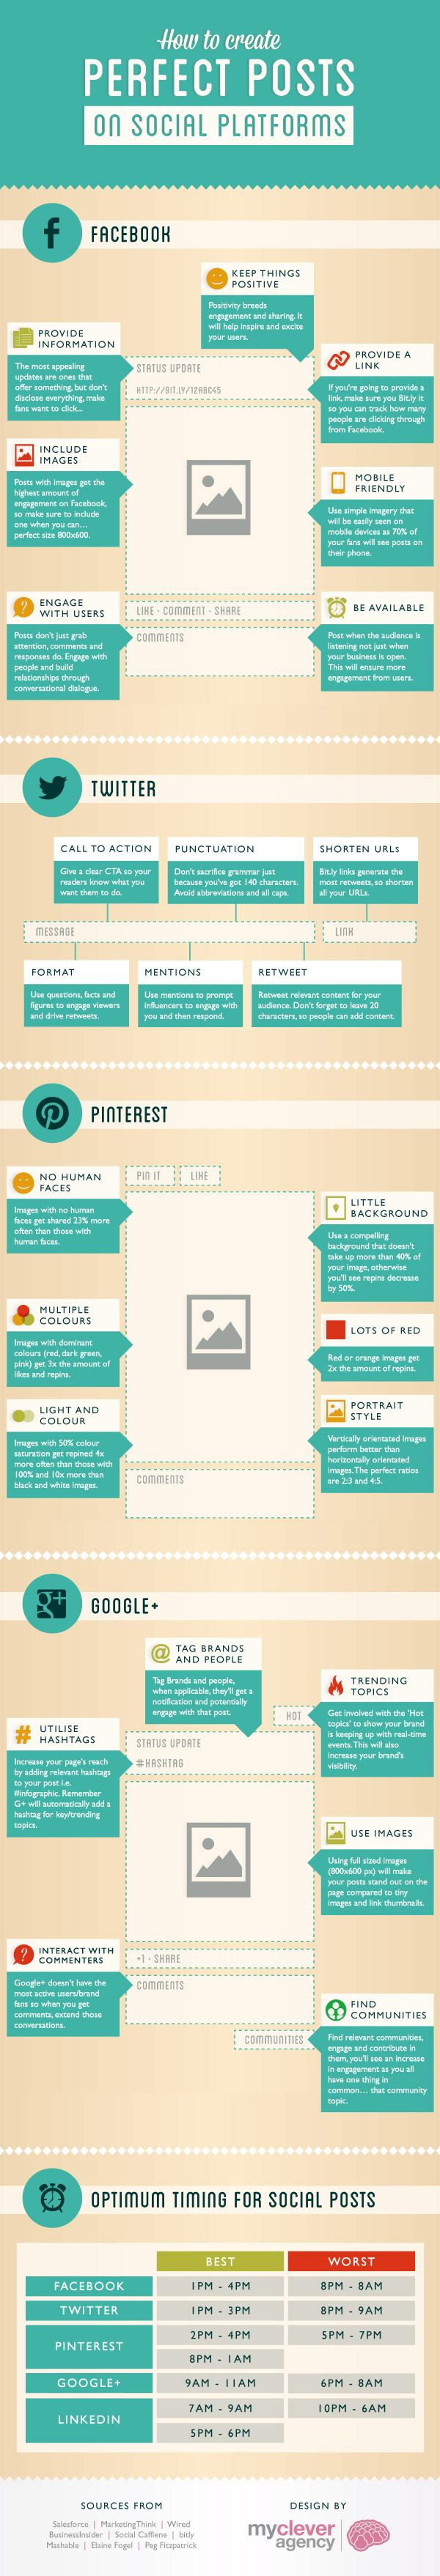 How you can create the perfect social media post.